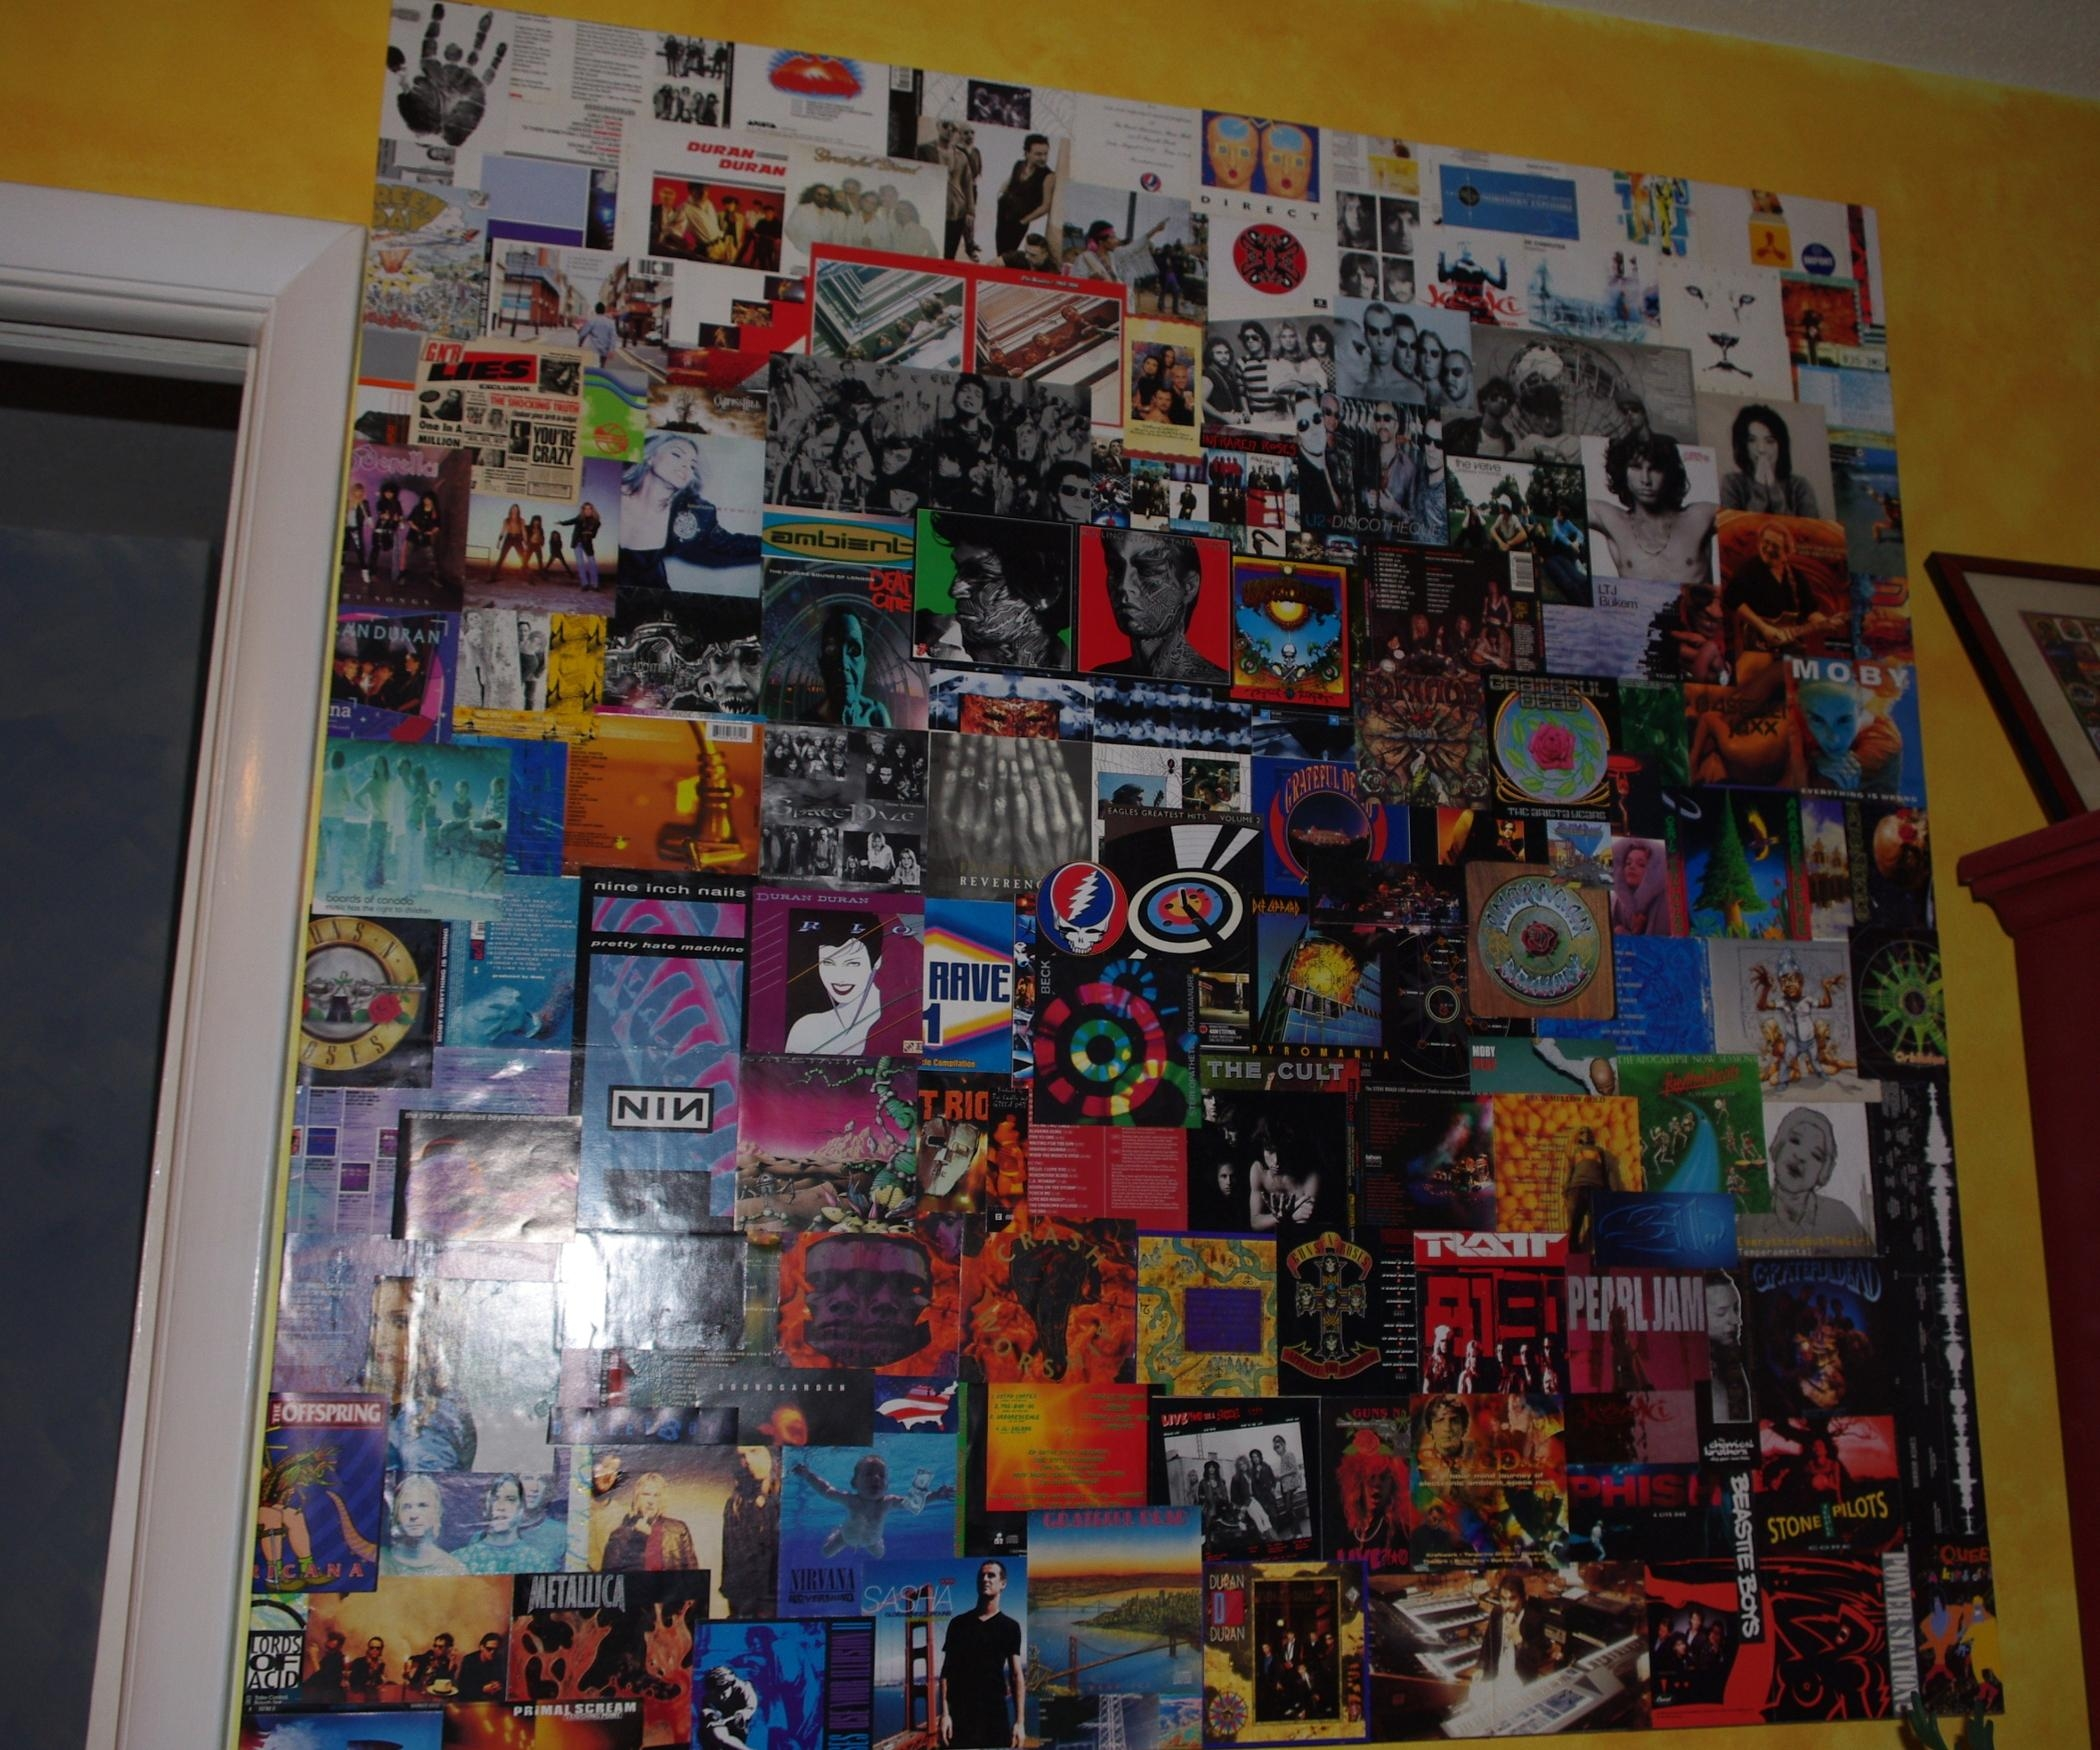 repurpose cd album cover art in giant wall collage image 16 of 20